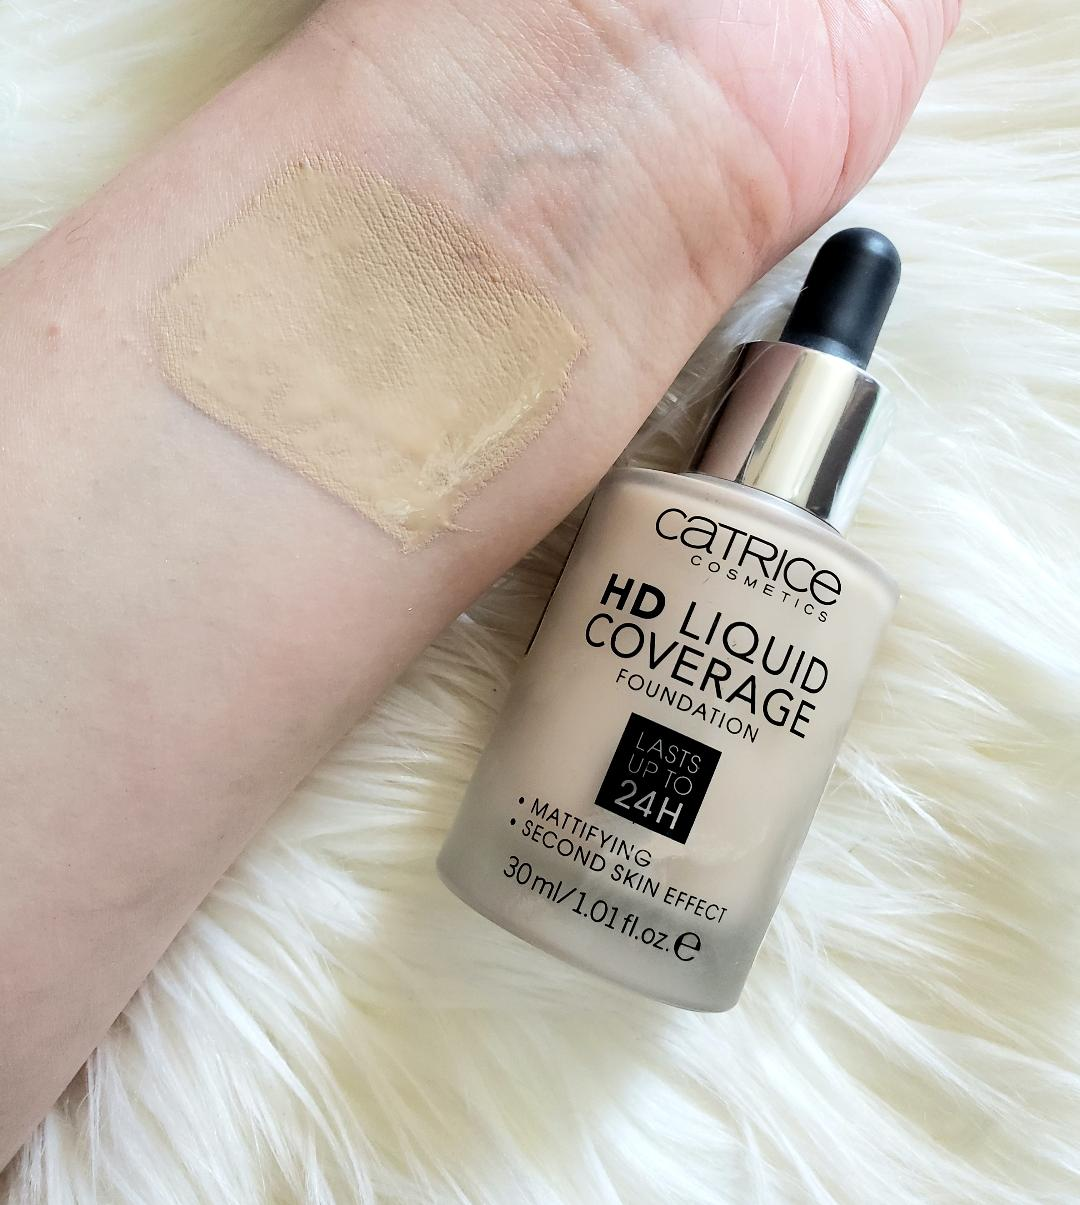 Foundation Fall Catrice Hd Foundation Along With The Aqua Fresh Hydro Primer Prisma Chrome Lipsticks The Book And Beauty Blog